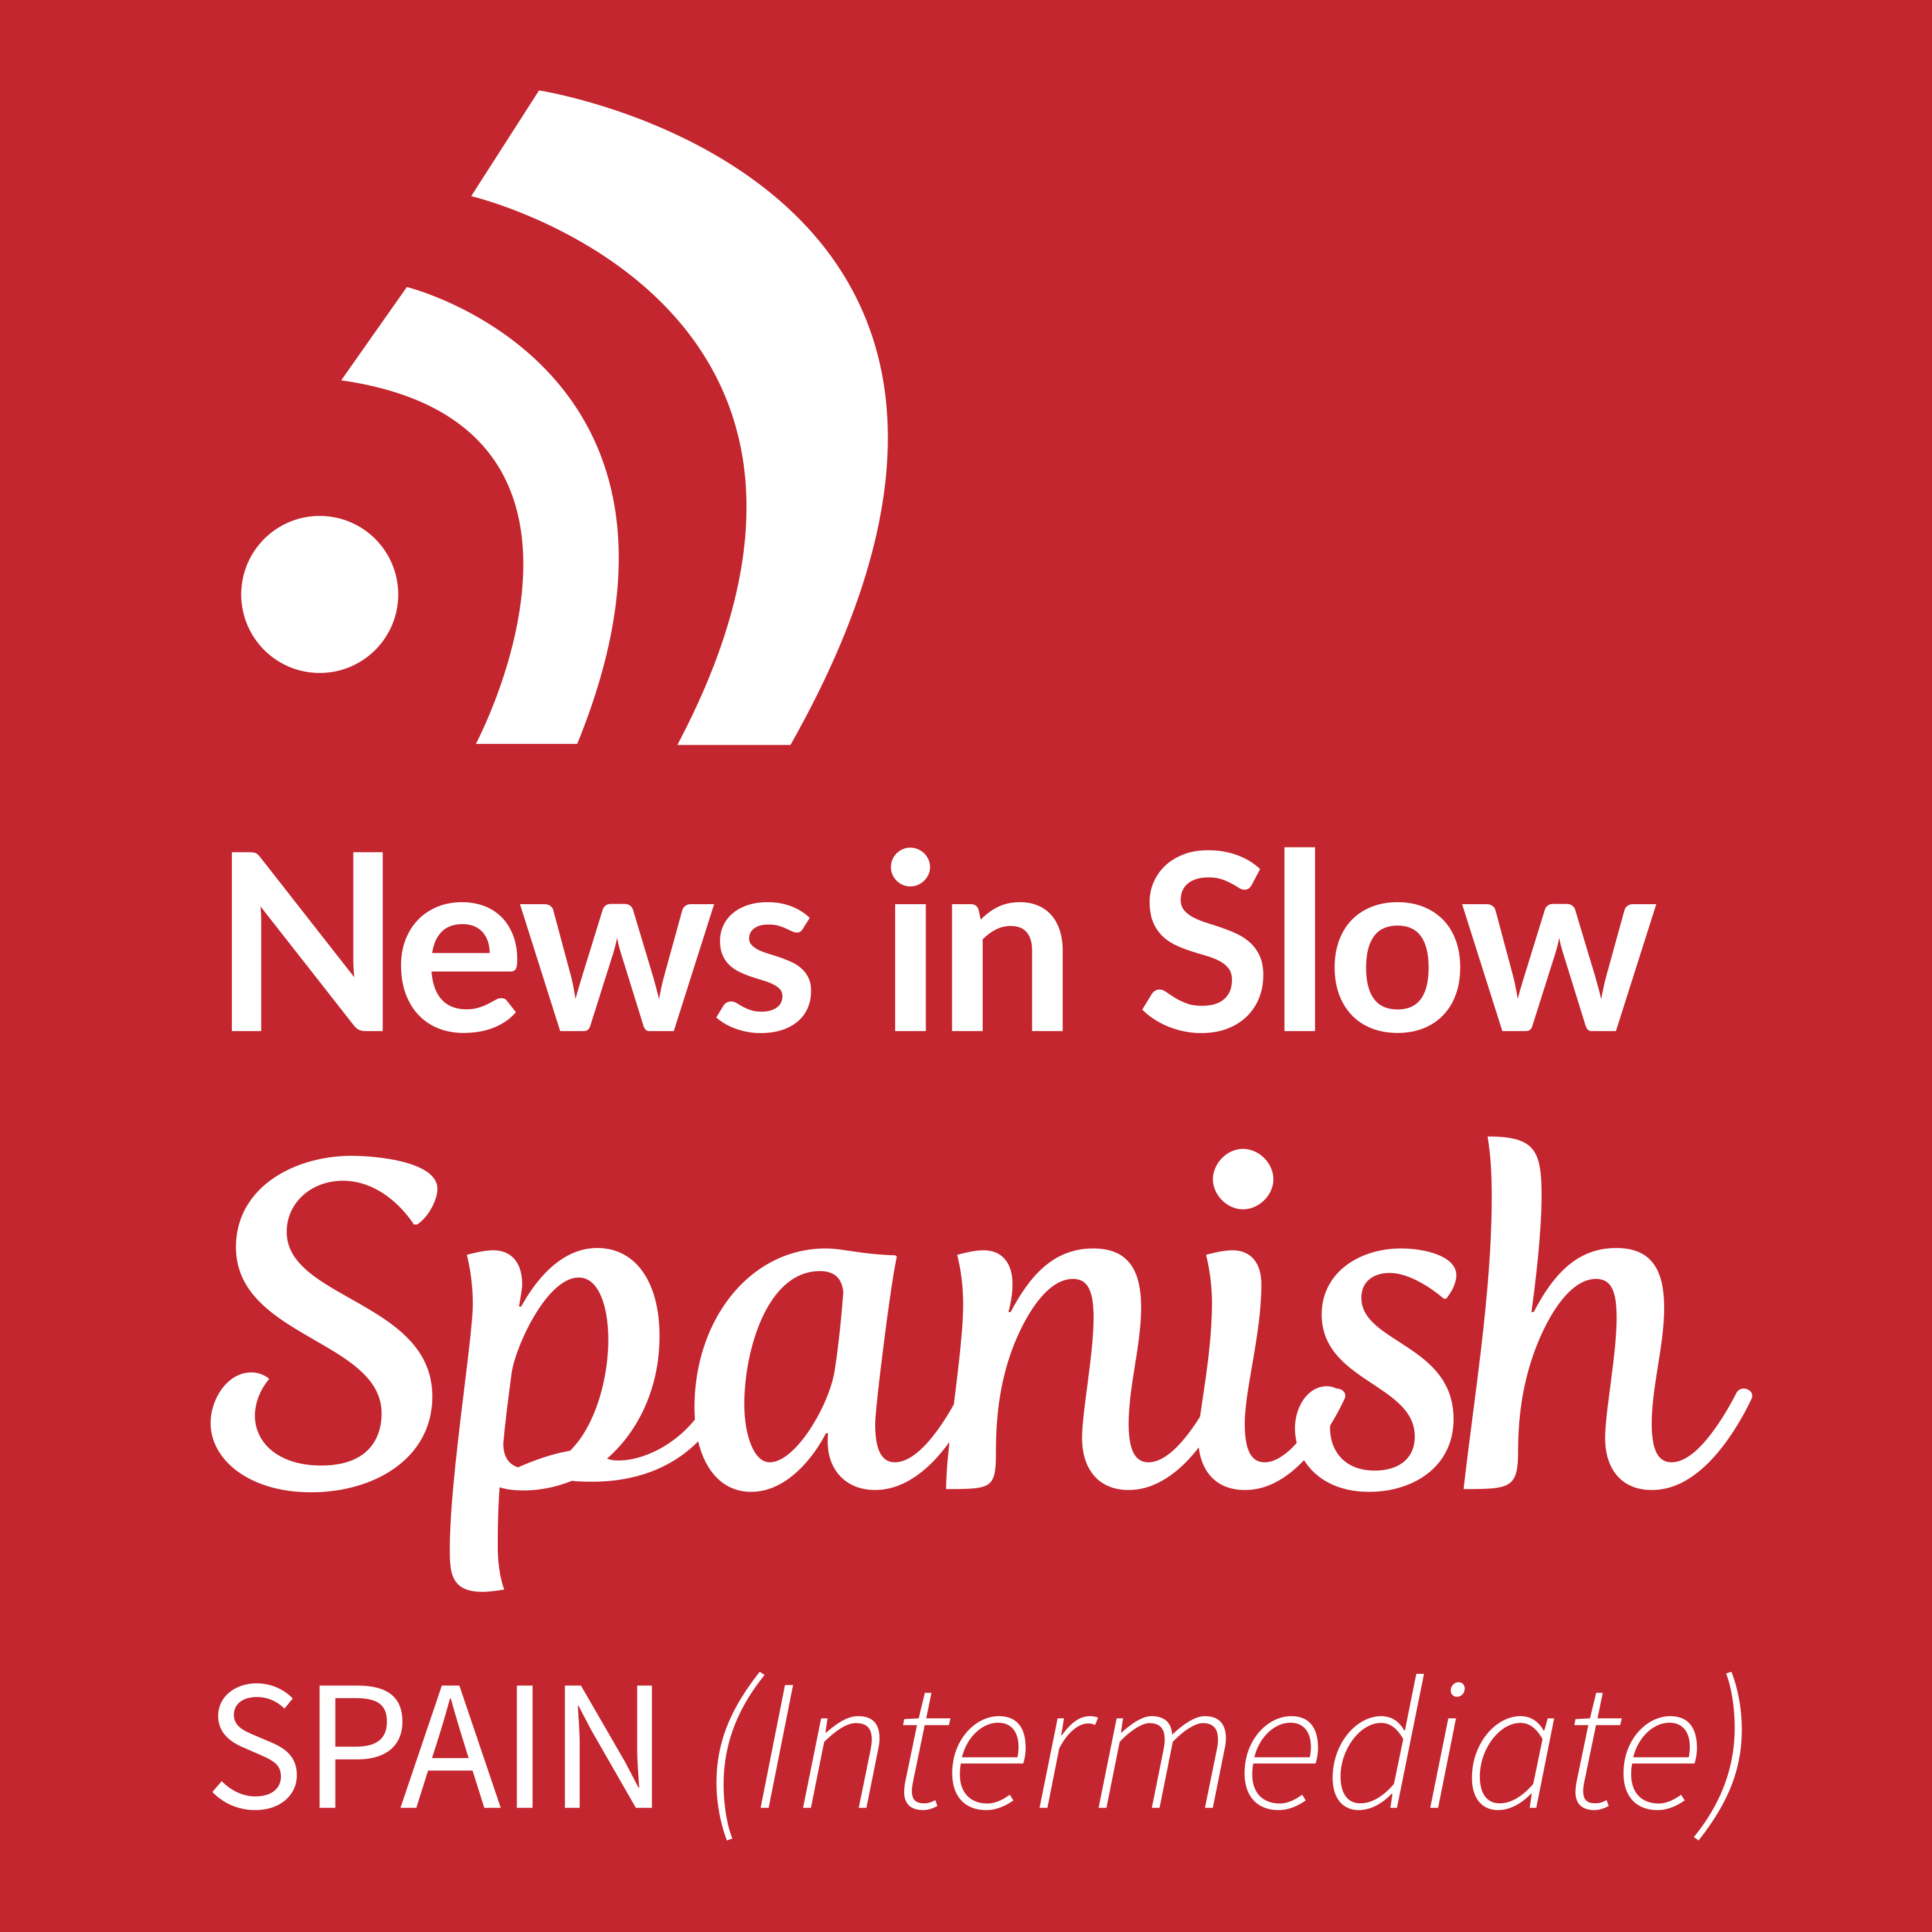 News in Slow Spanish - #372 - Language learning in the context of current events